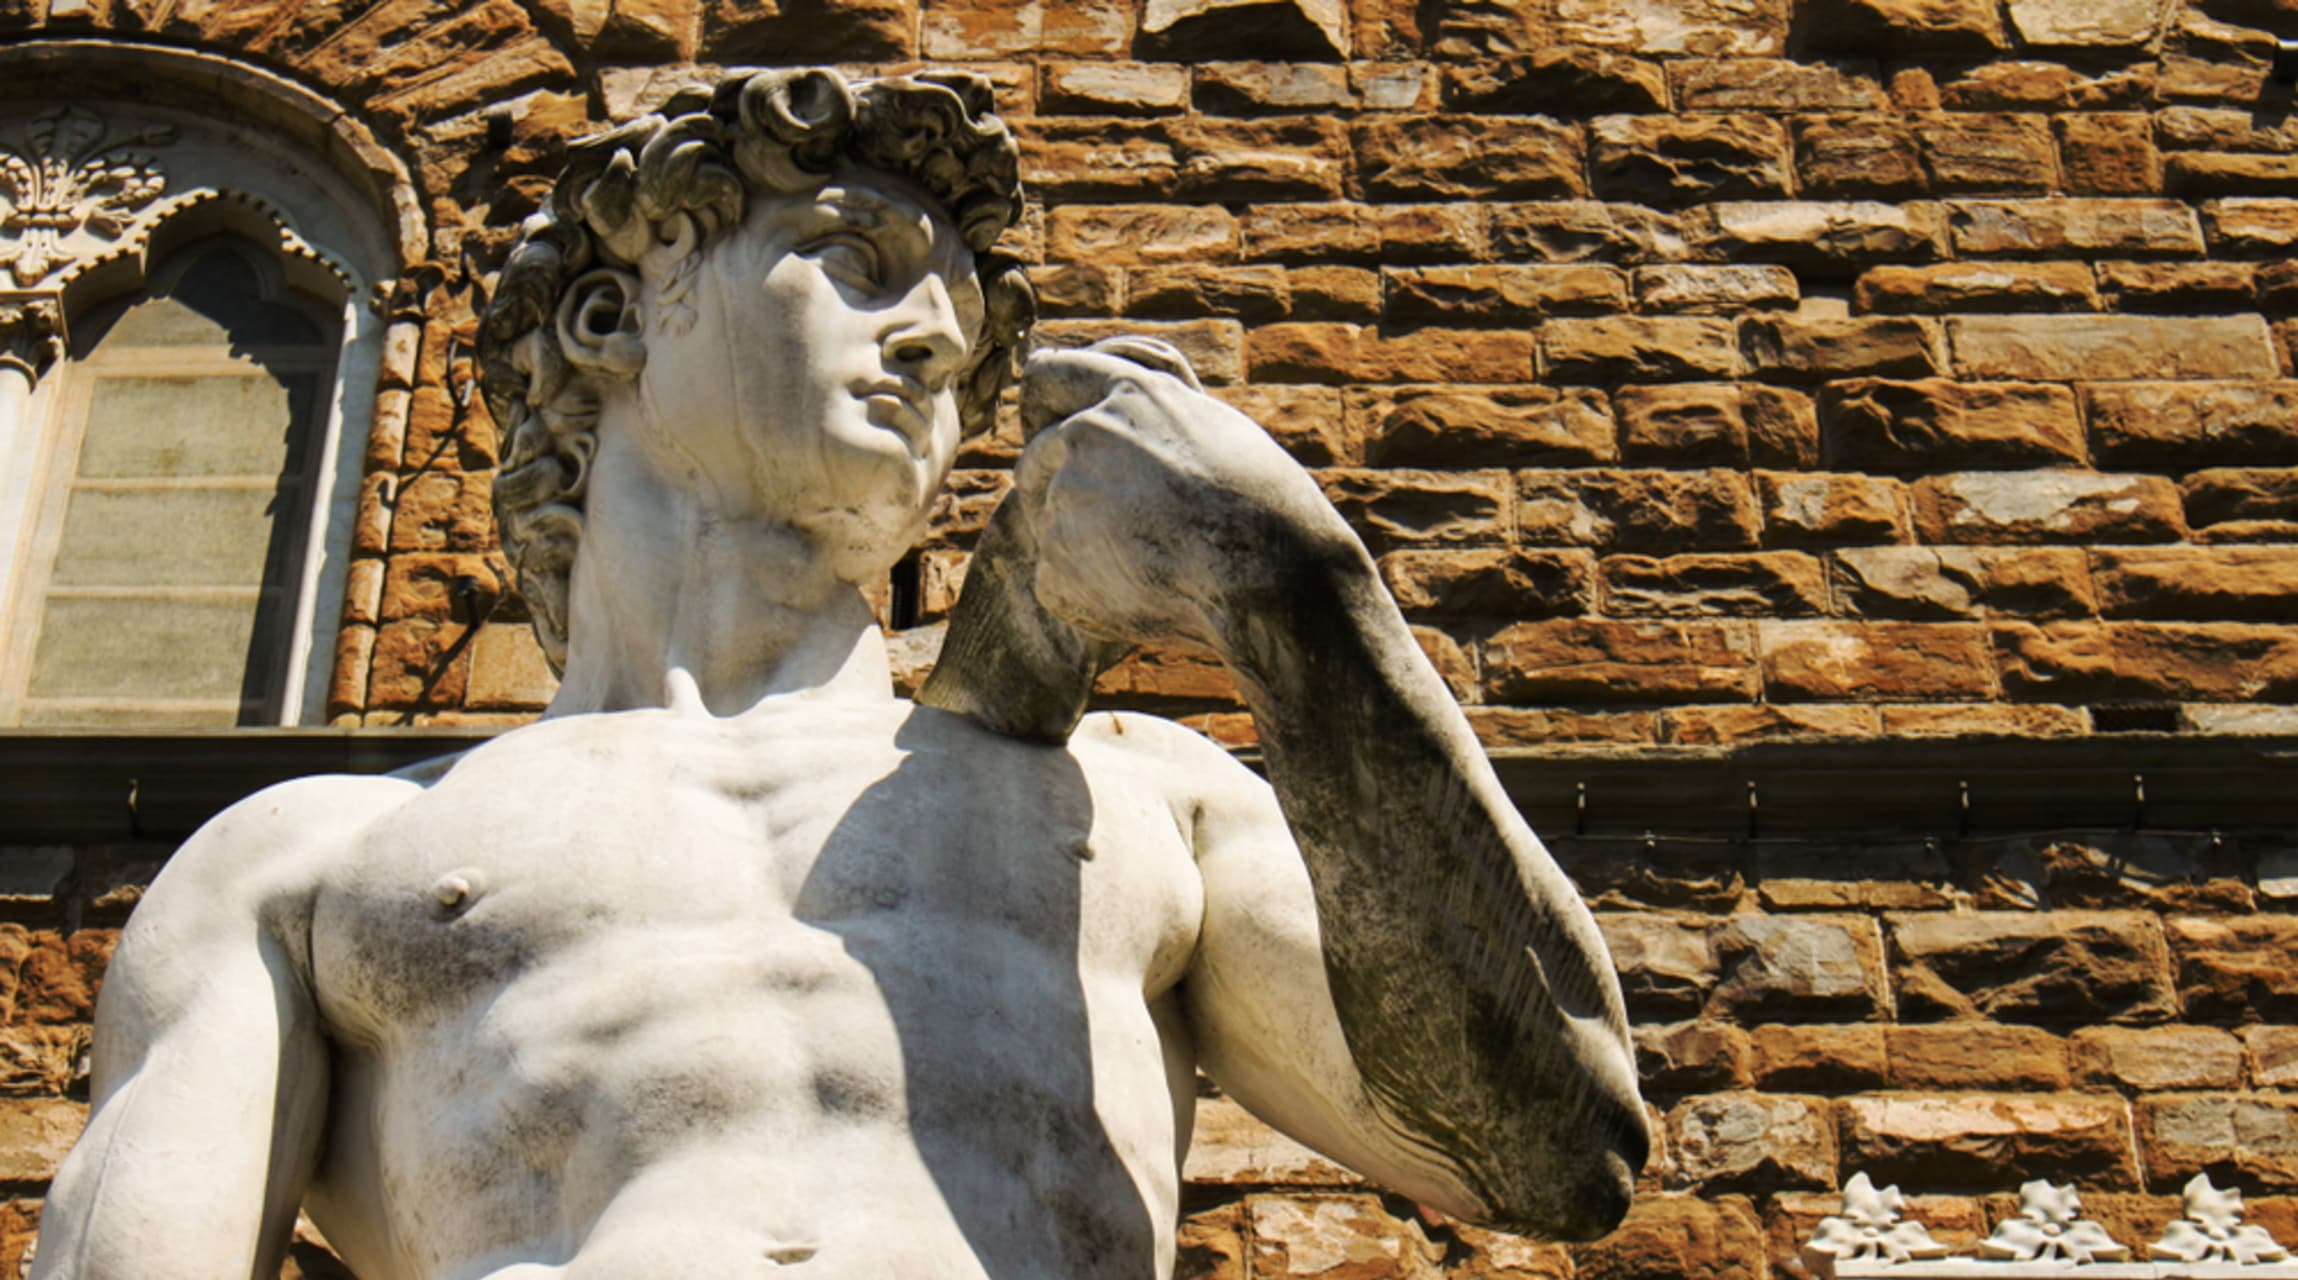 Florence - The Story of Michelangelo's Statue of David in Florence